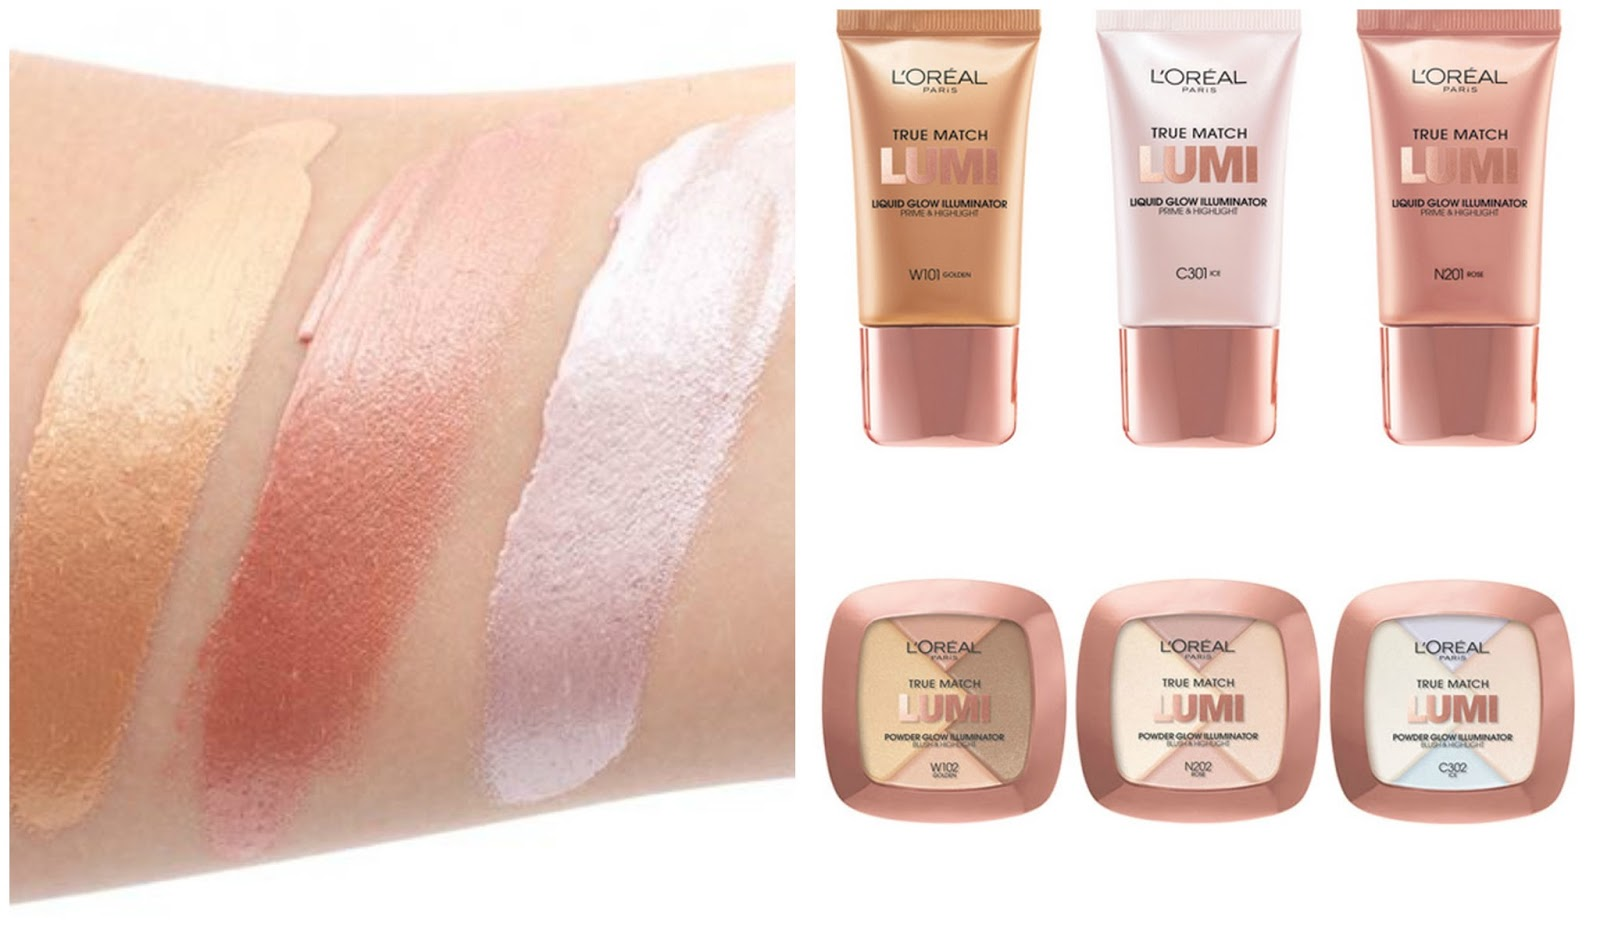 Iluminador Loreal Top Iluminadores Low Cost Top Highlighters Low Cost Esther